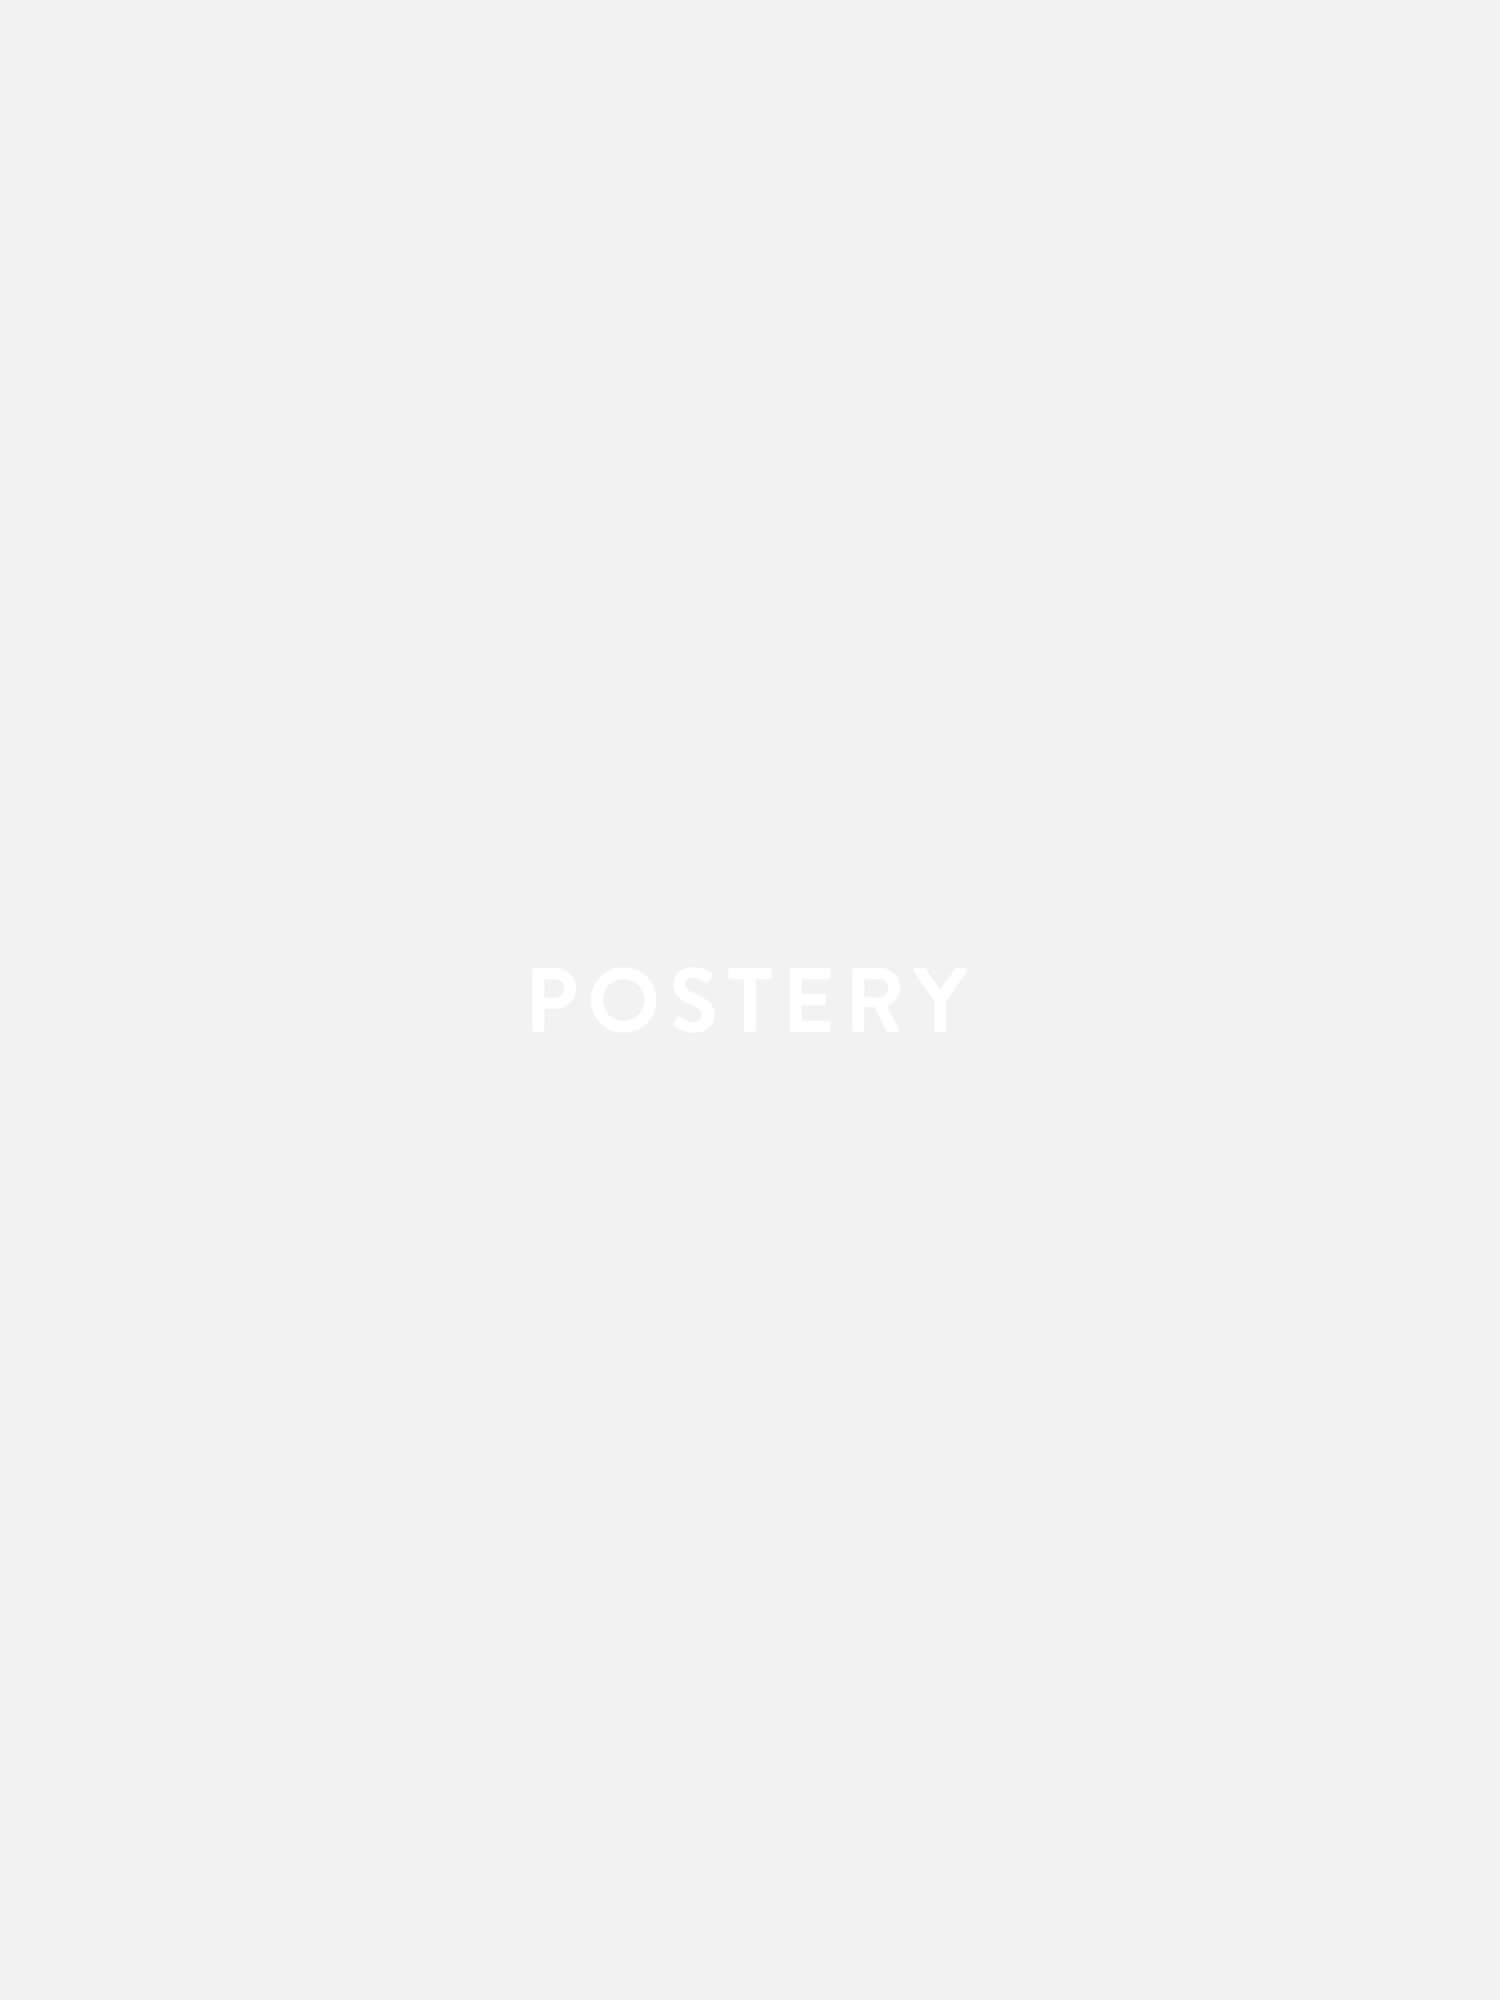 Streets of Manhattan Poster